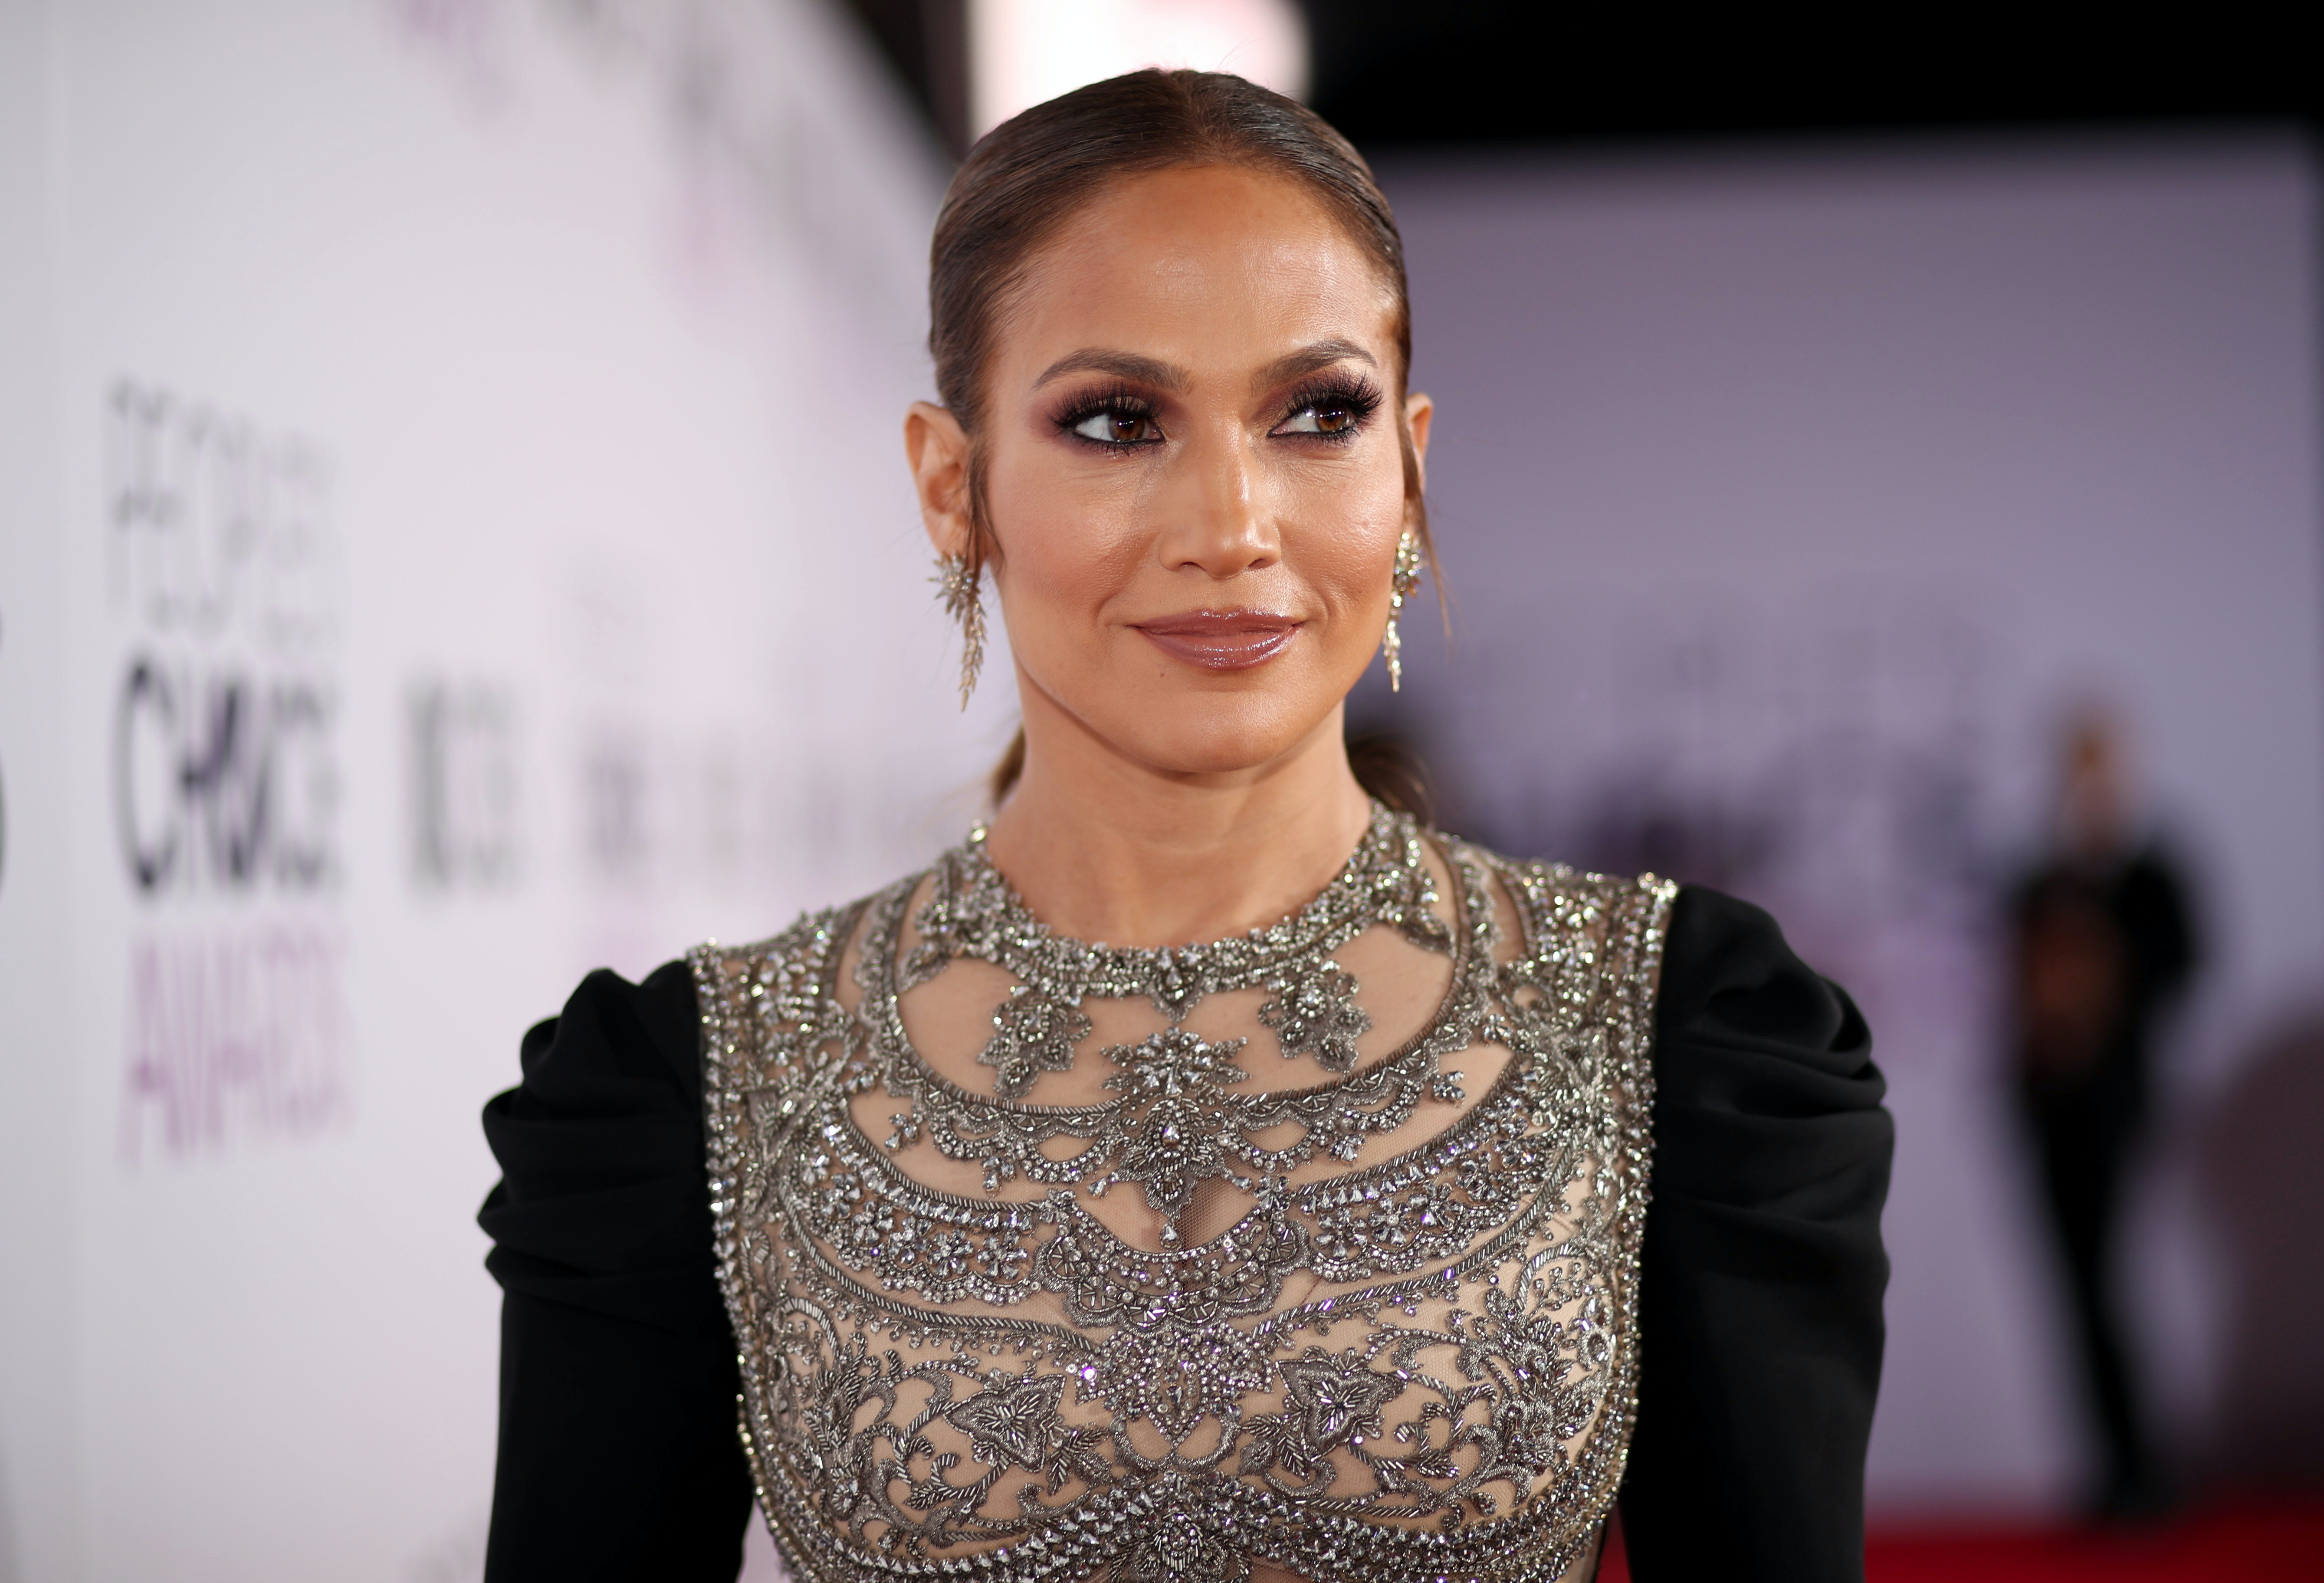 Getting back together again? Jennifer Lopez gushes about ex love Drake